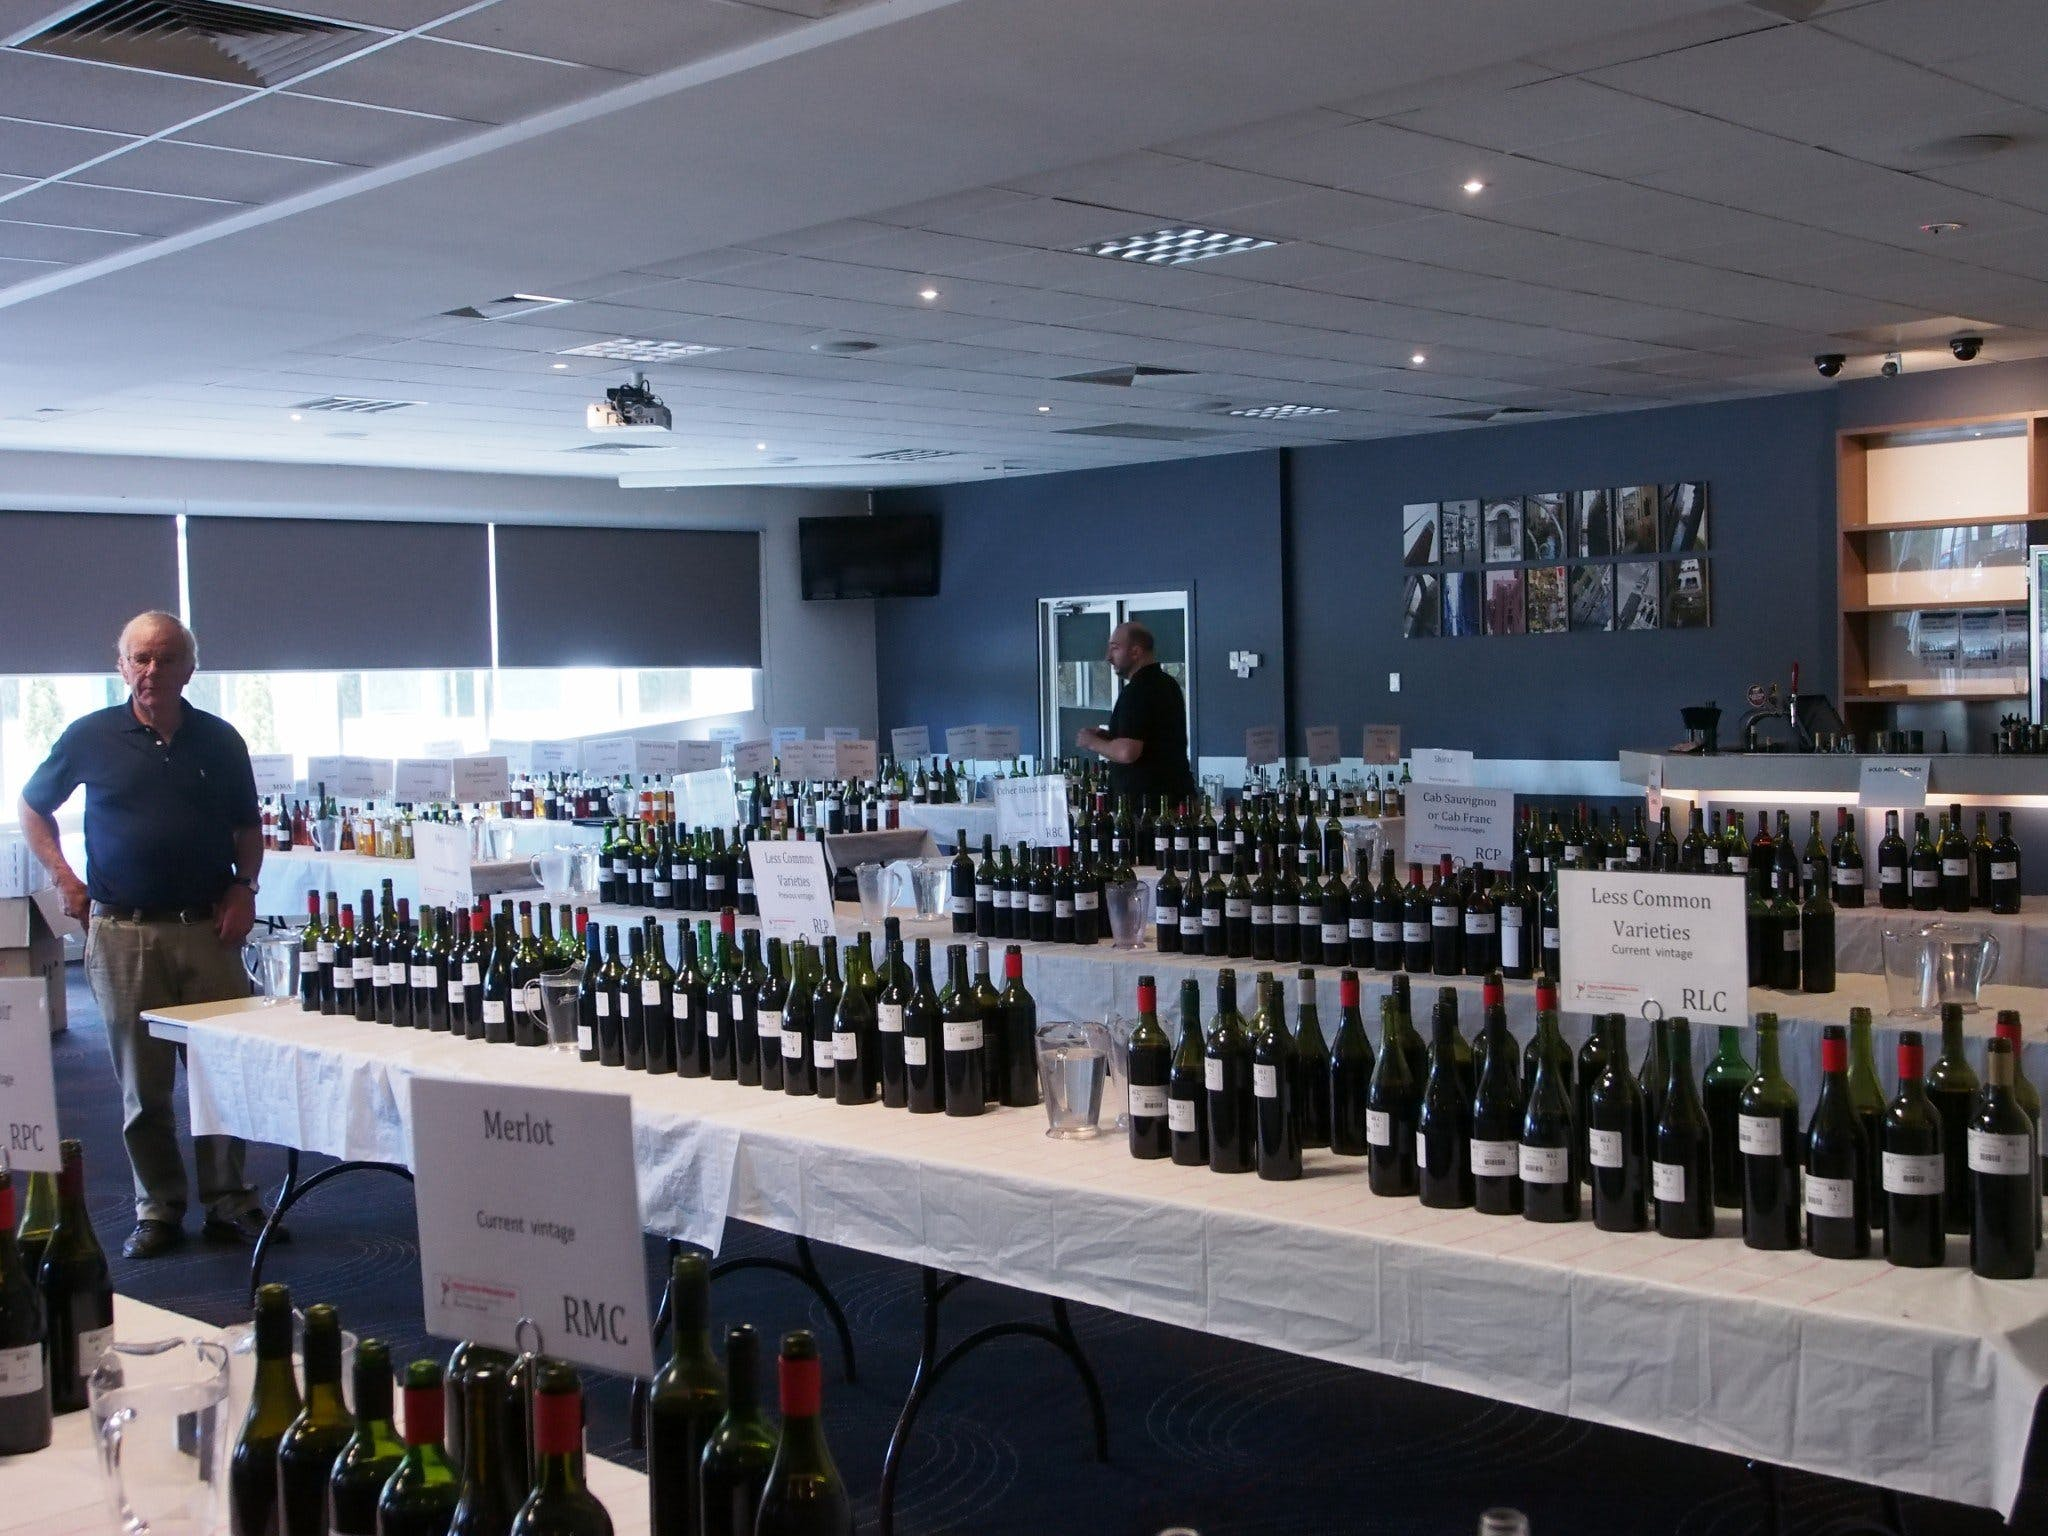 Eltham and District Wine Guild Annual Wine Show - 51st Annual Show - Hotel Accommodation